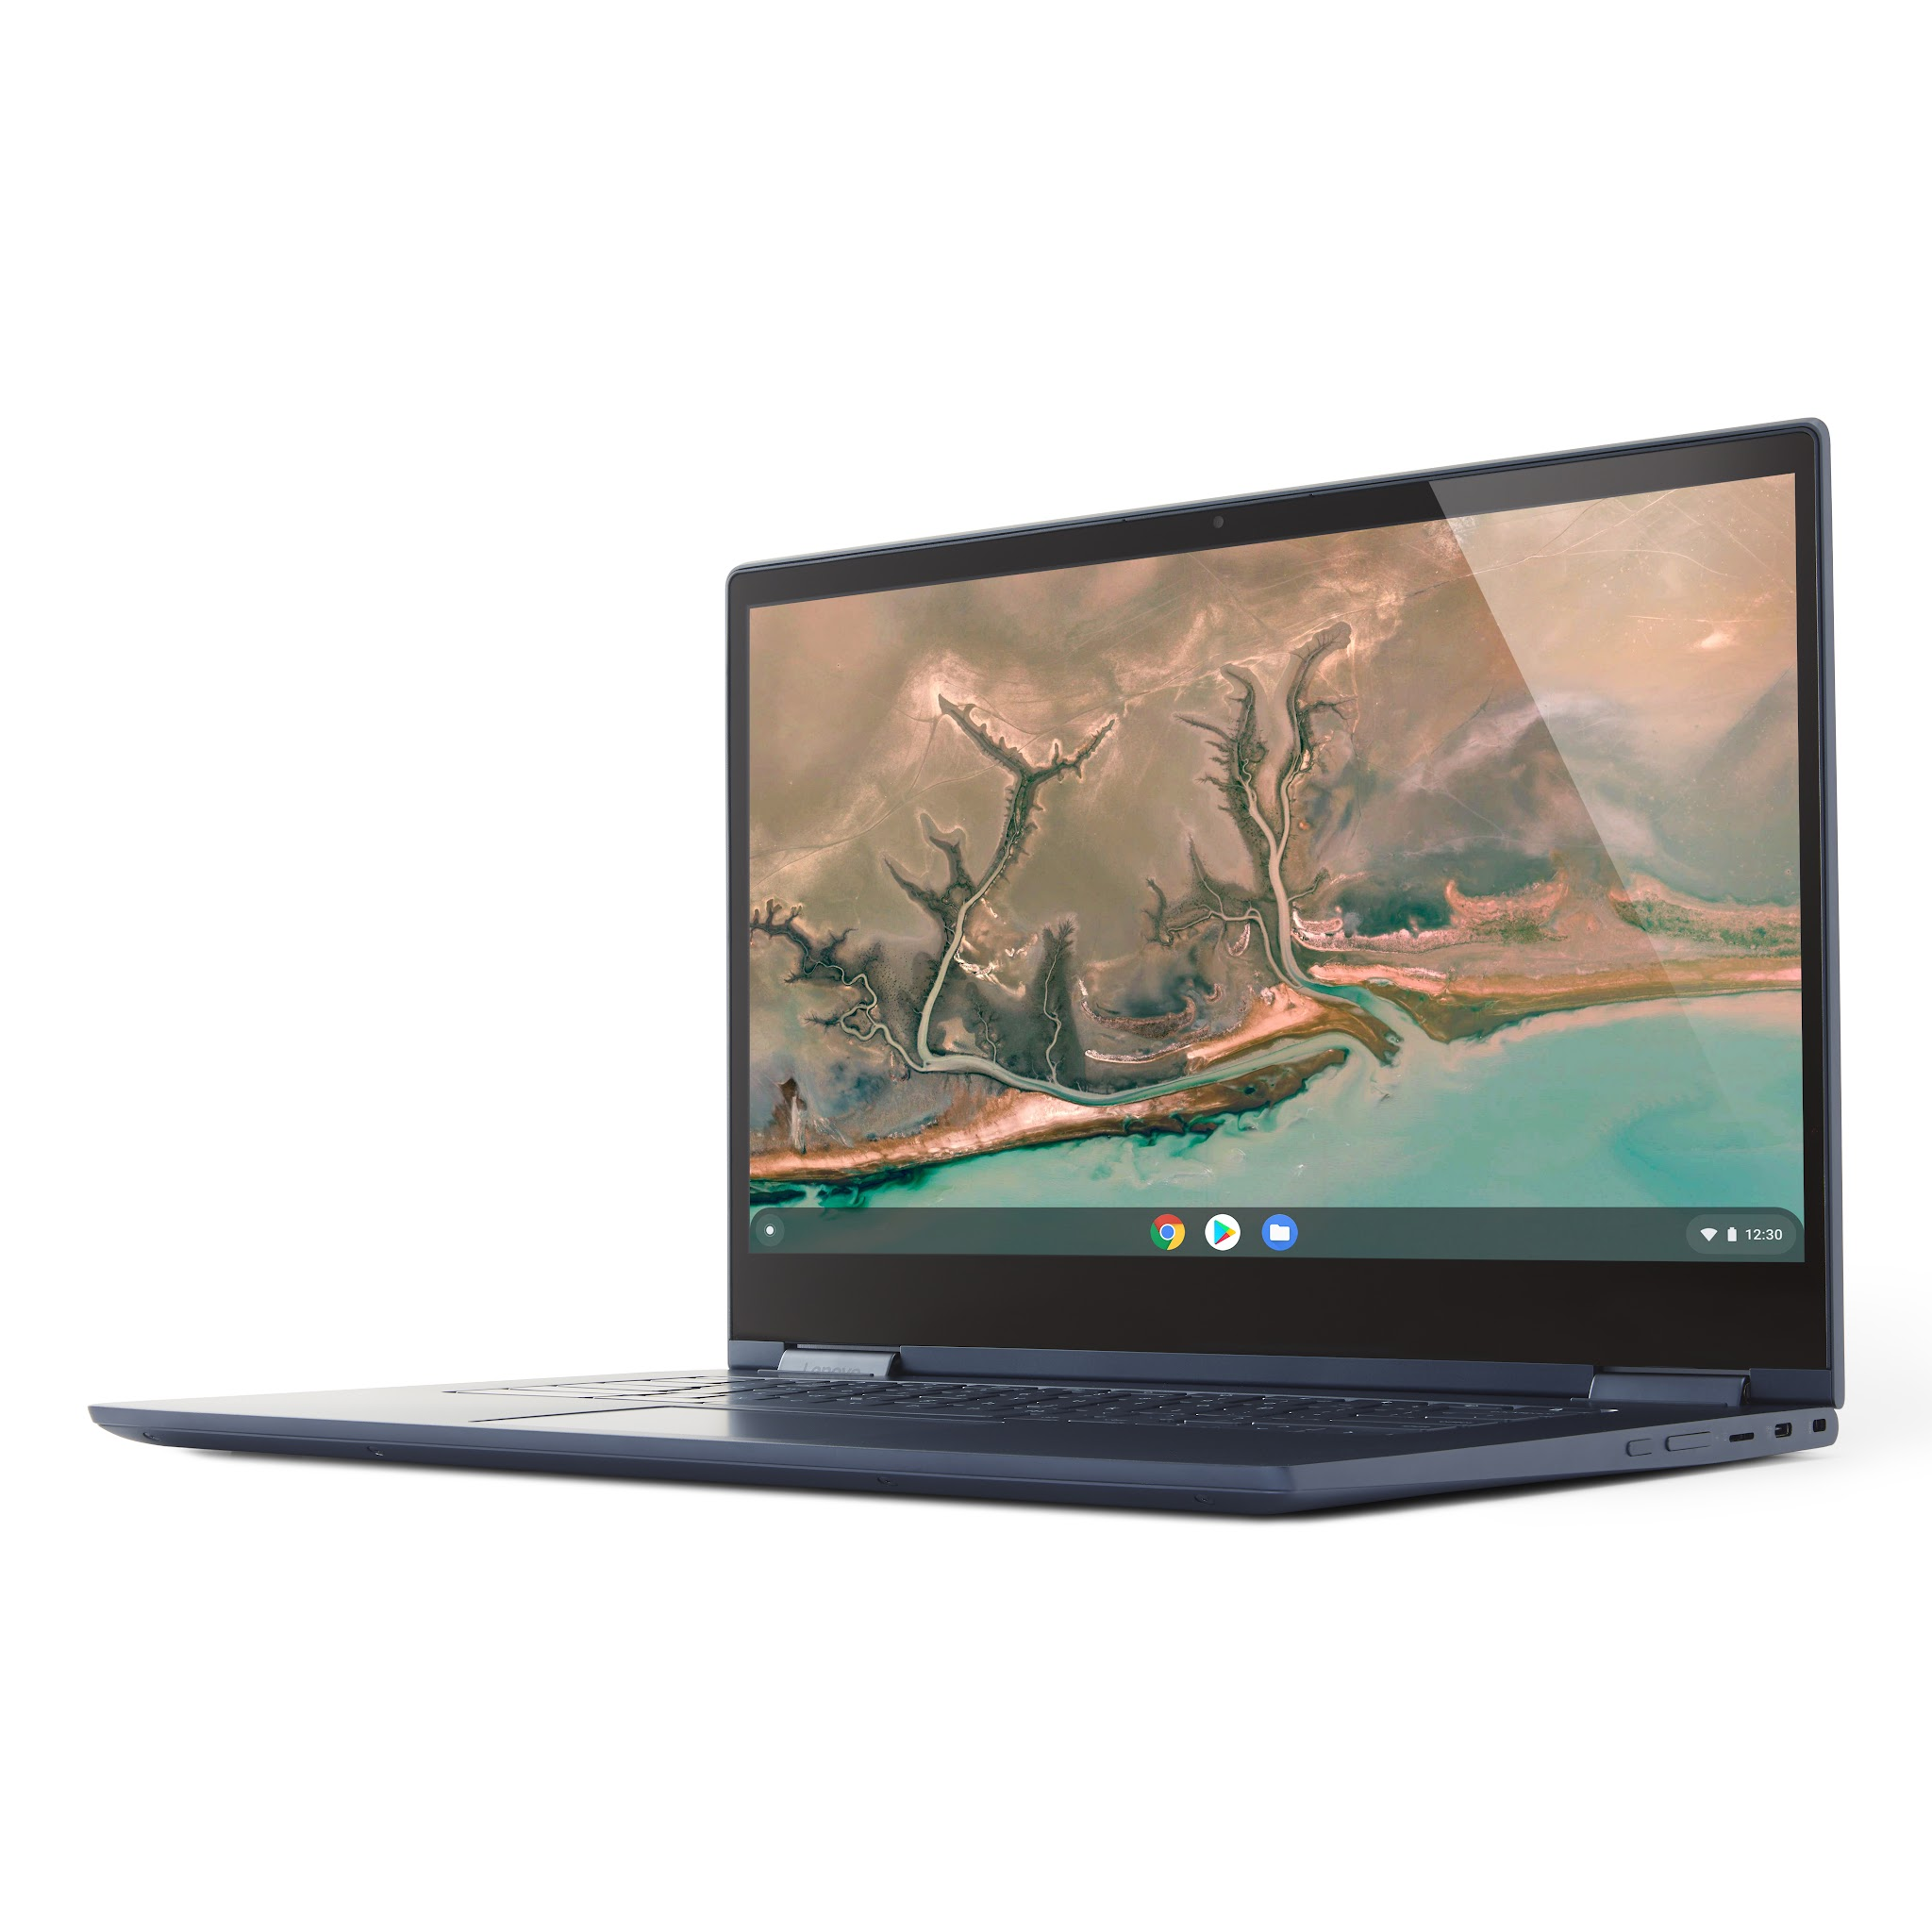 Lenovo YOGA Chromebook C630 – Google Chromebooks